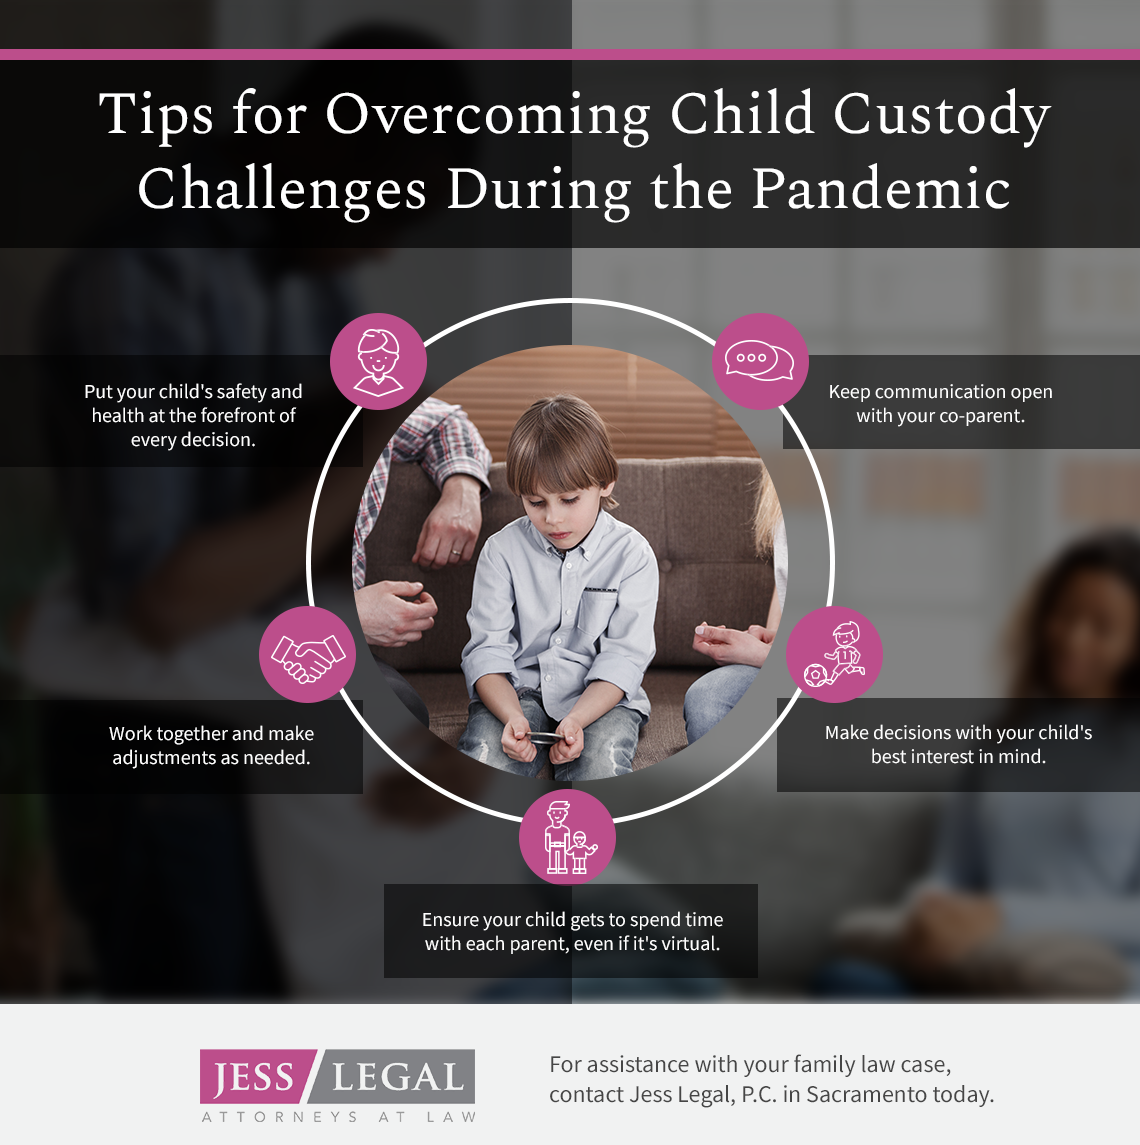 Tips for Overcoming Child Custody Challenges During the Pandemic.png